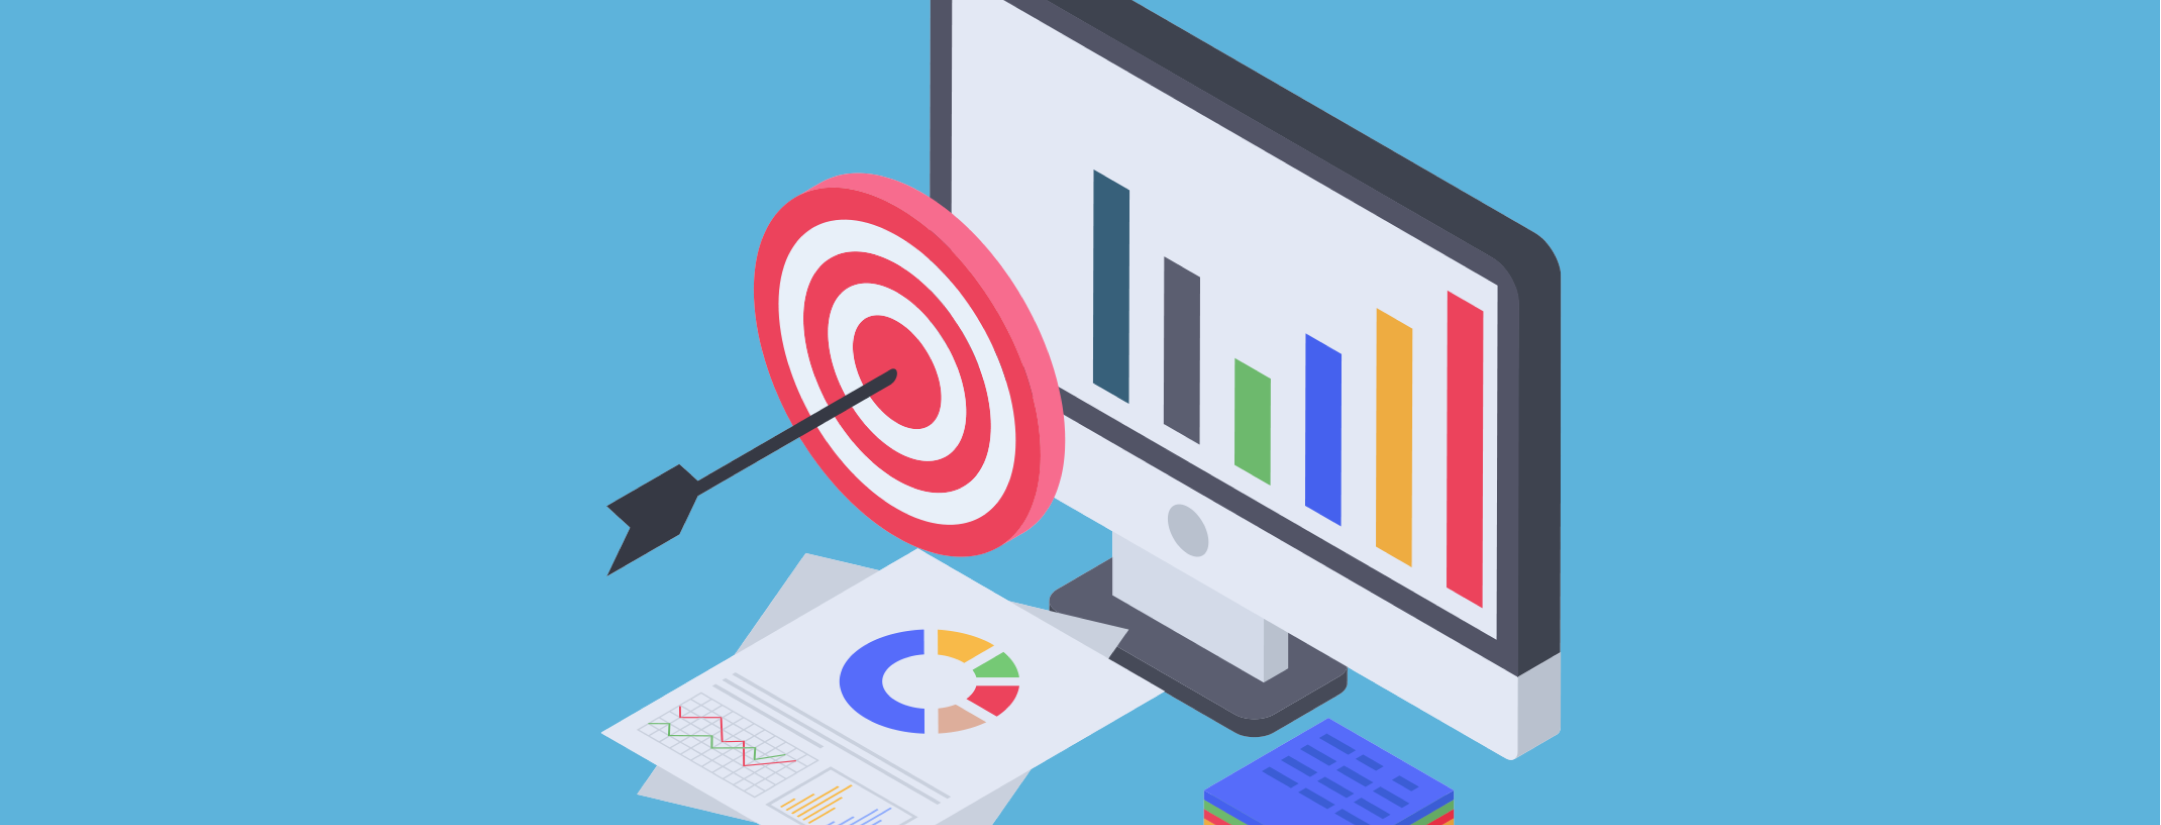 How a UX Audit Can Revolutionize Both Your Digital Products & Your Business